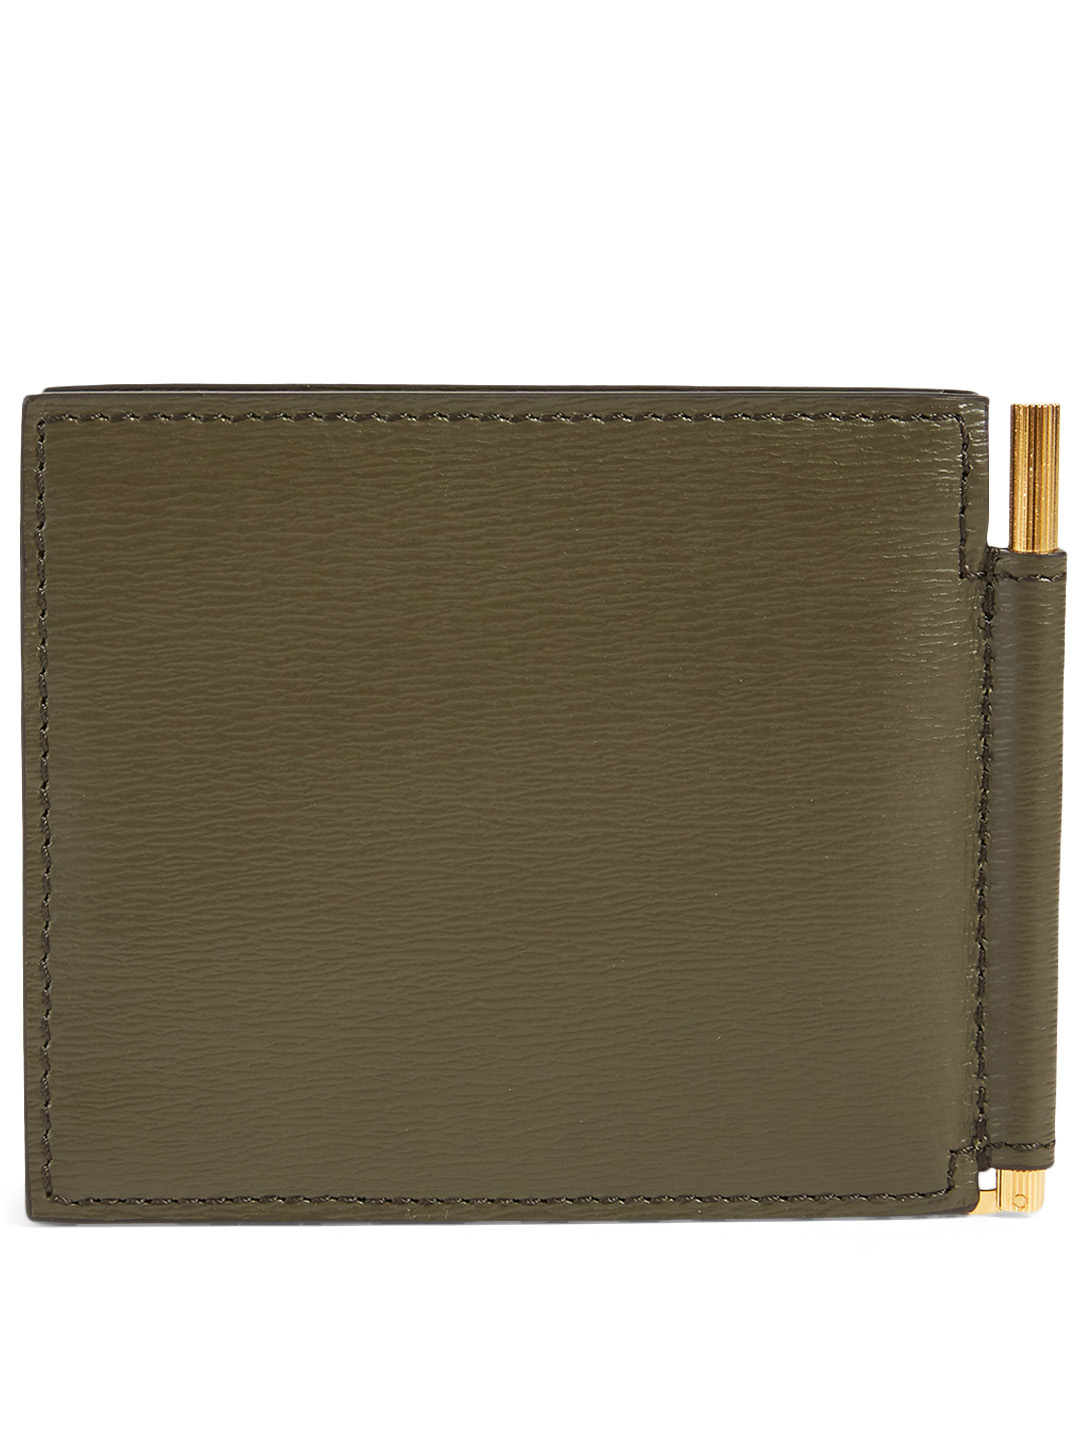 TOM FORD Leather Bifold Wallet Men's Green